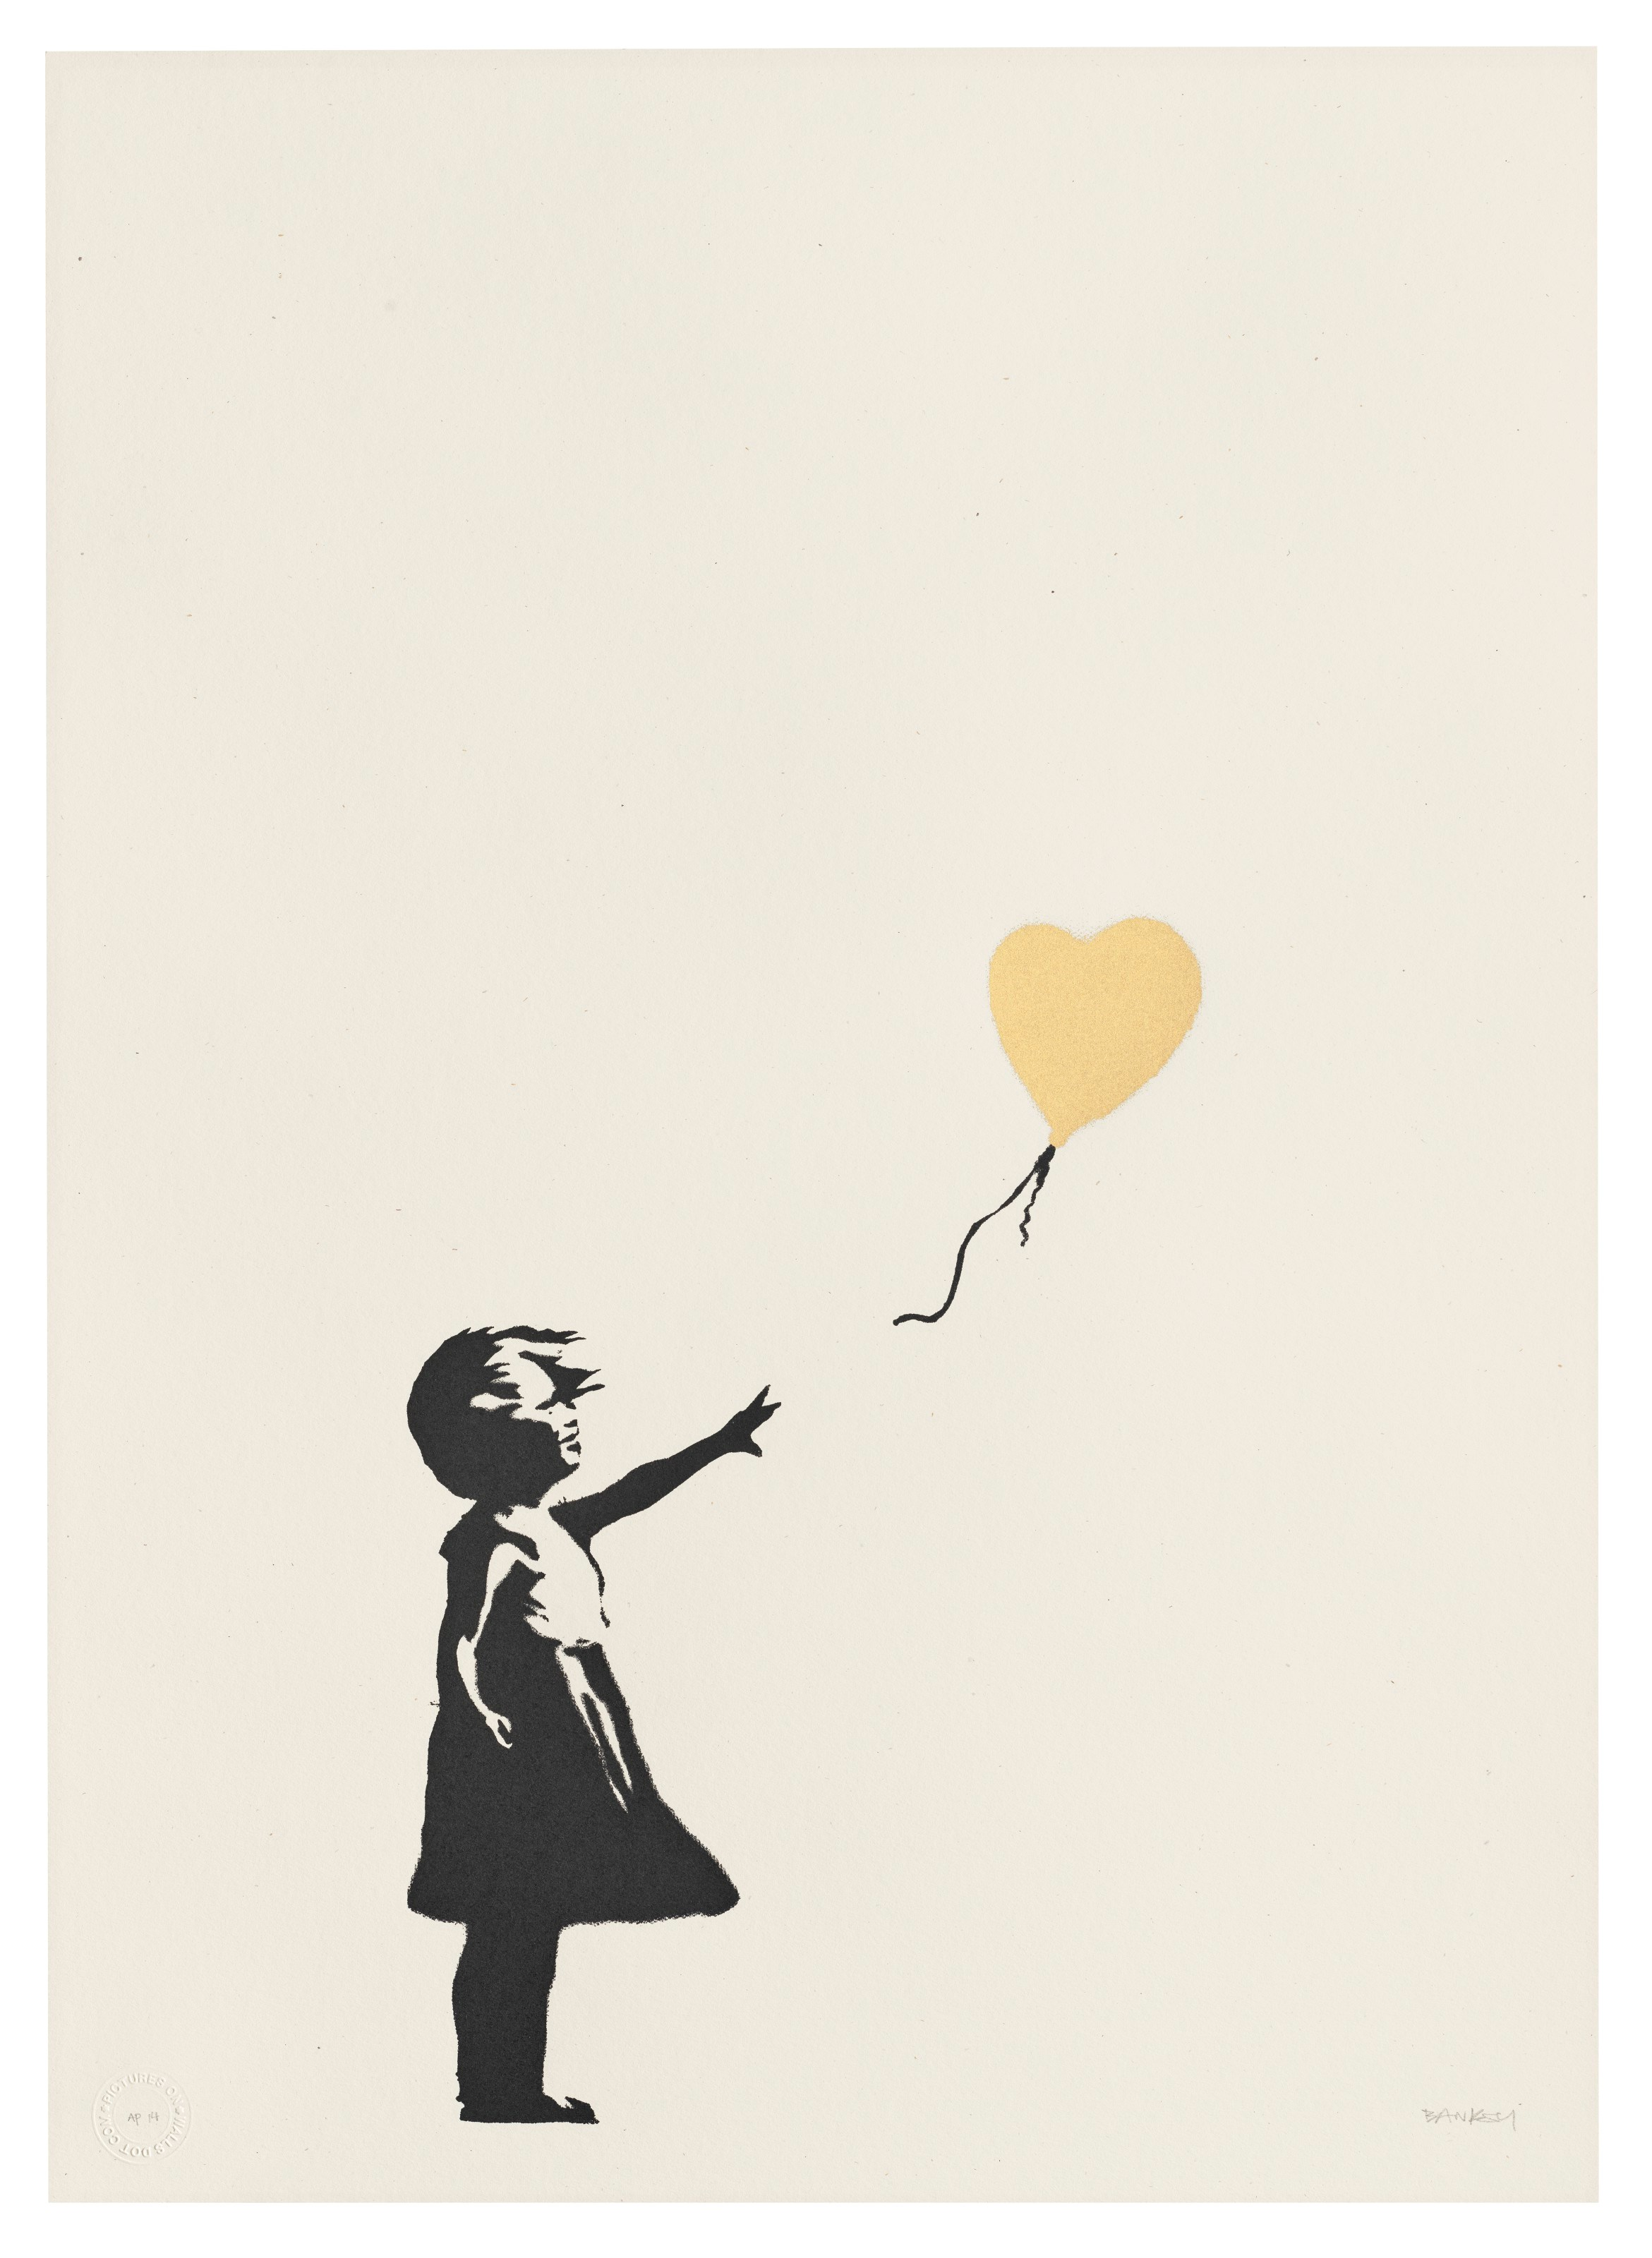 Banksy, Girl with Balloon — Colour AP (Gold), 2004. Screenprint in black and gold. Sheet 695 x 498  mm. Estimate £800,000-1,200,000. Offered inBanksy I can't believe you morons actually buy this sht, 9-23 September 2021, Online